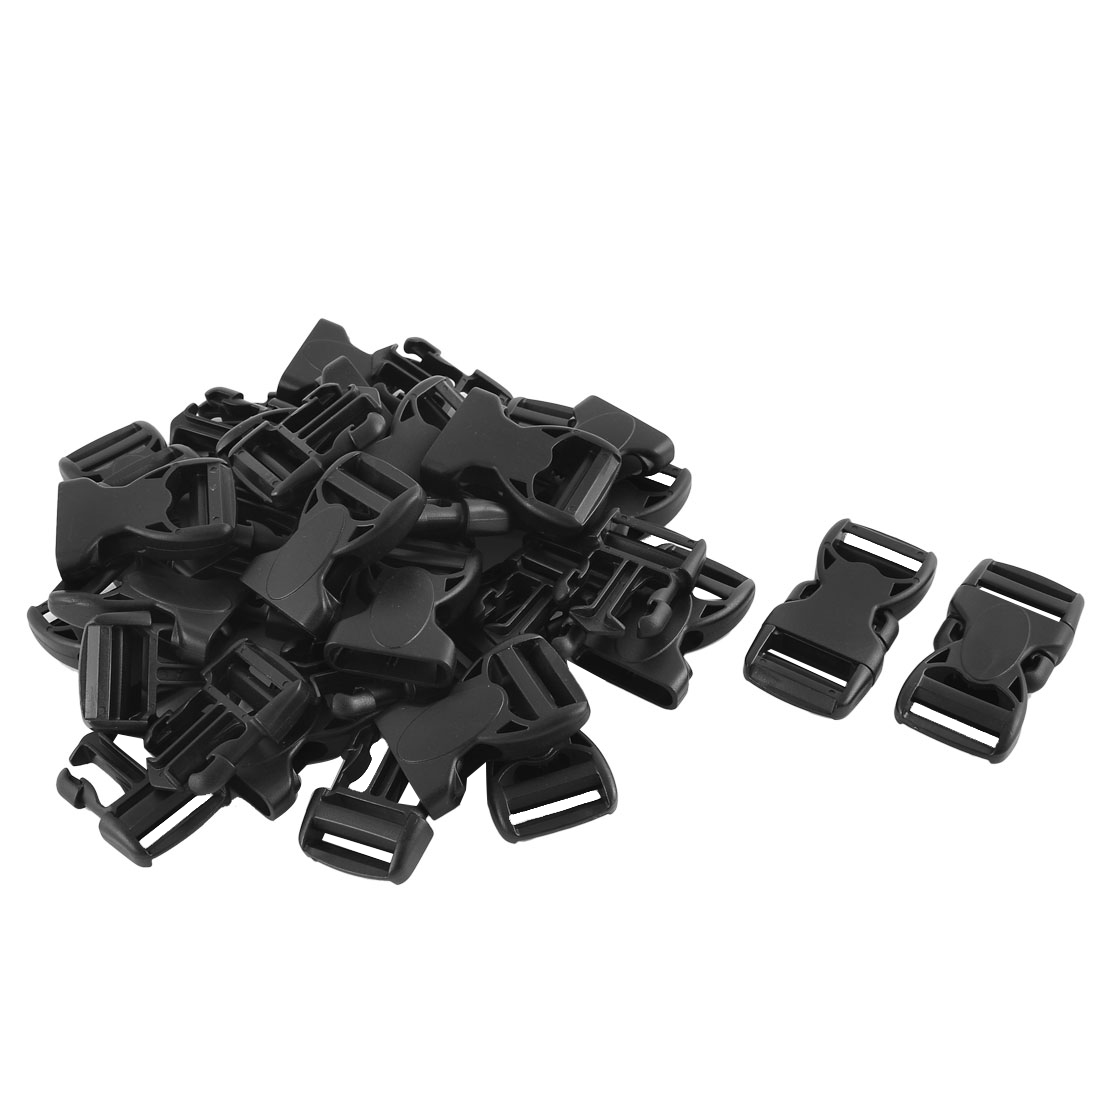 Suitcase Backpack Strap Plastic Double Head Quick Release Buckles Black 25mm 20pcs